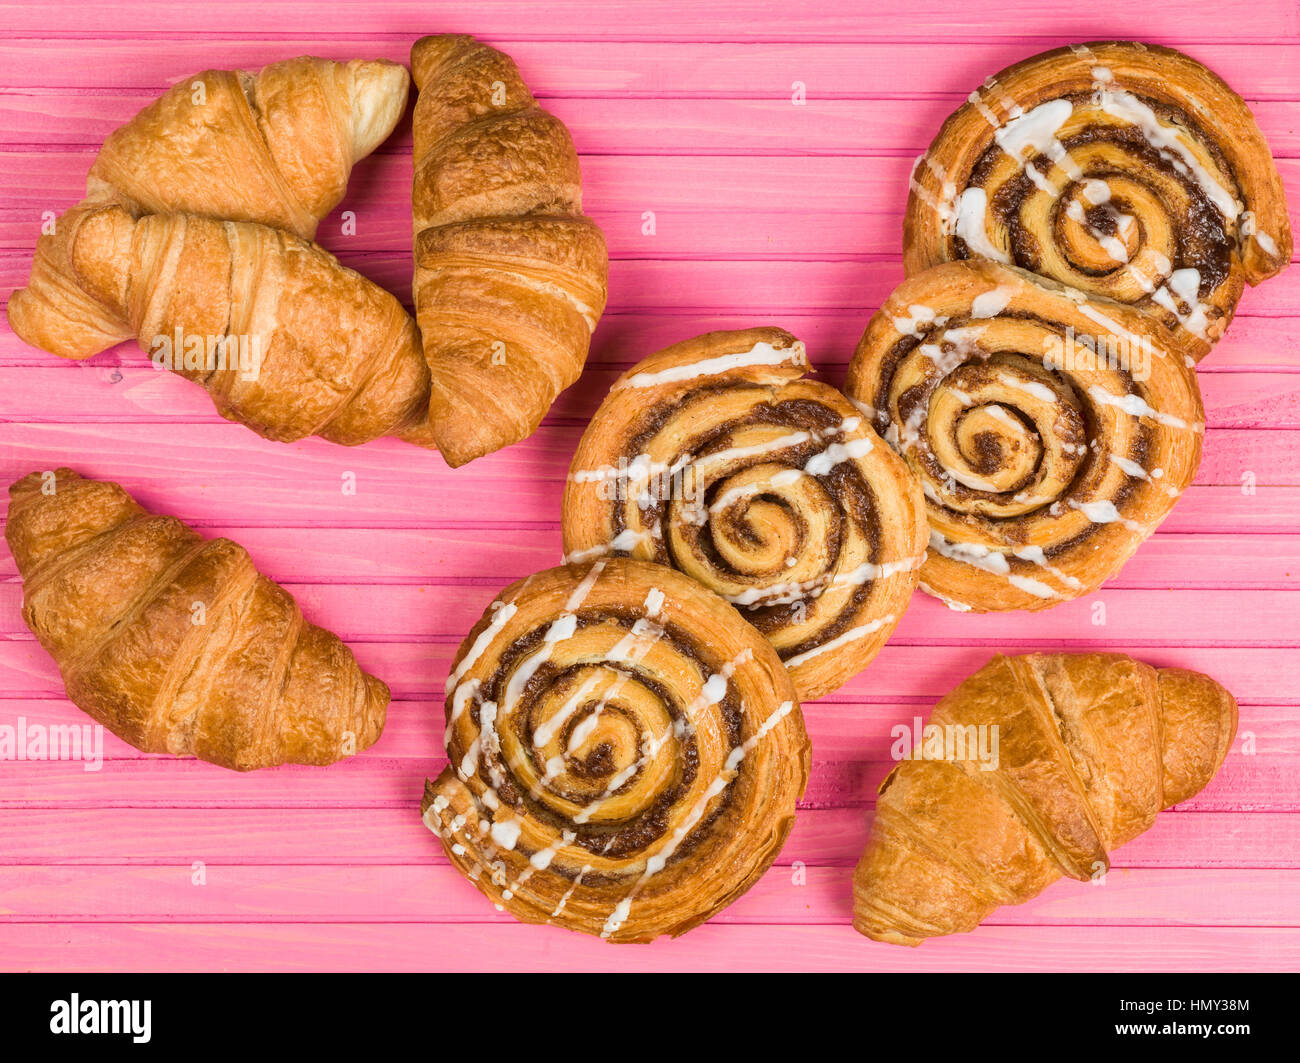 Selection of Croissants and Cinnamon Swirls Breakfast Pastries - Stock Image